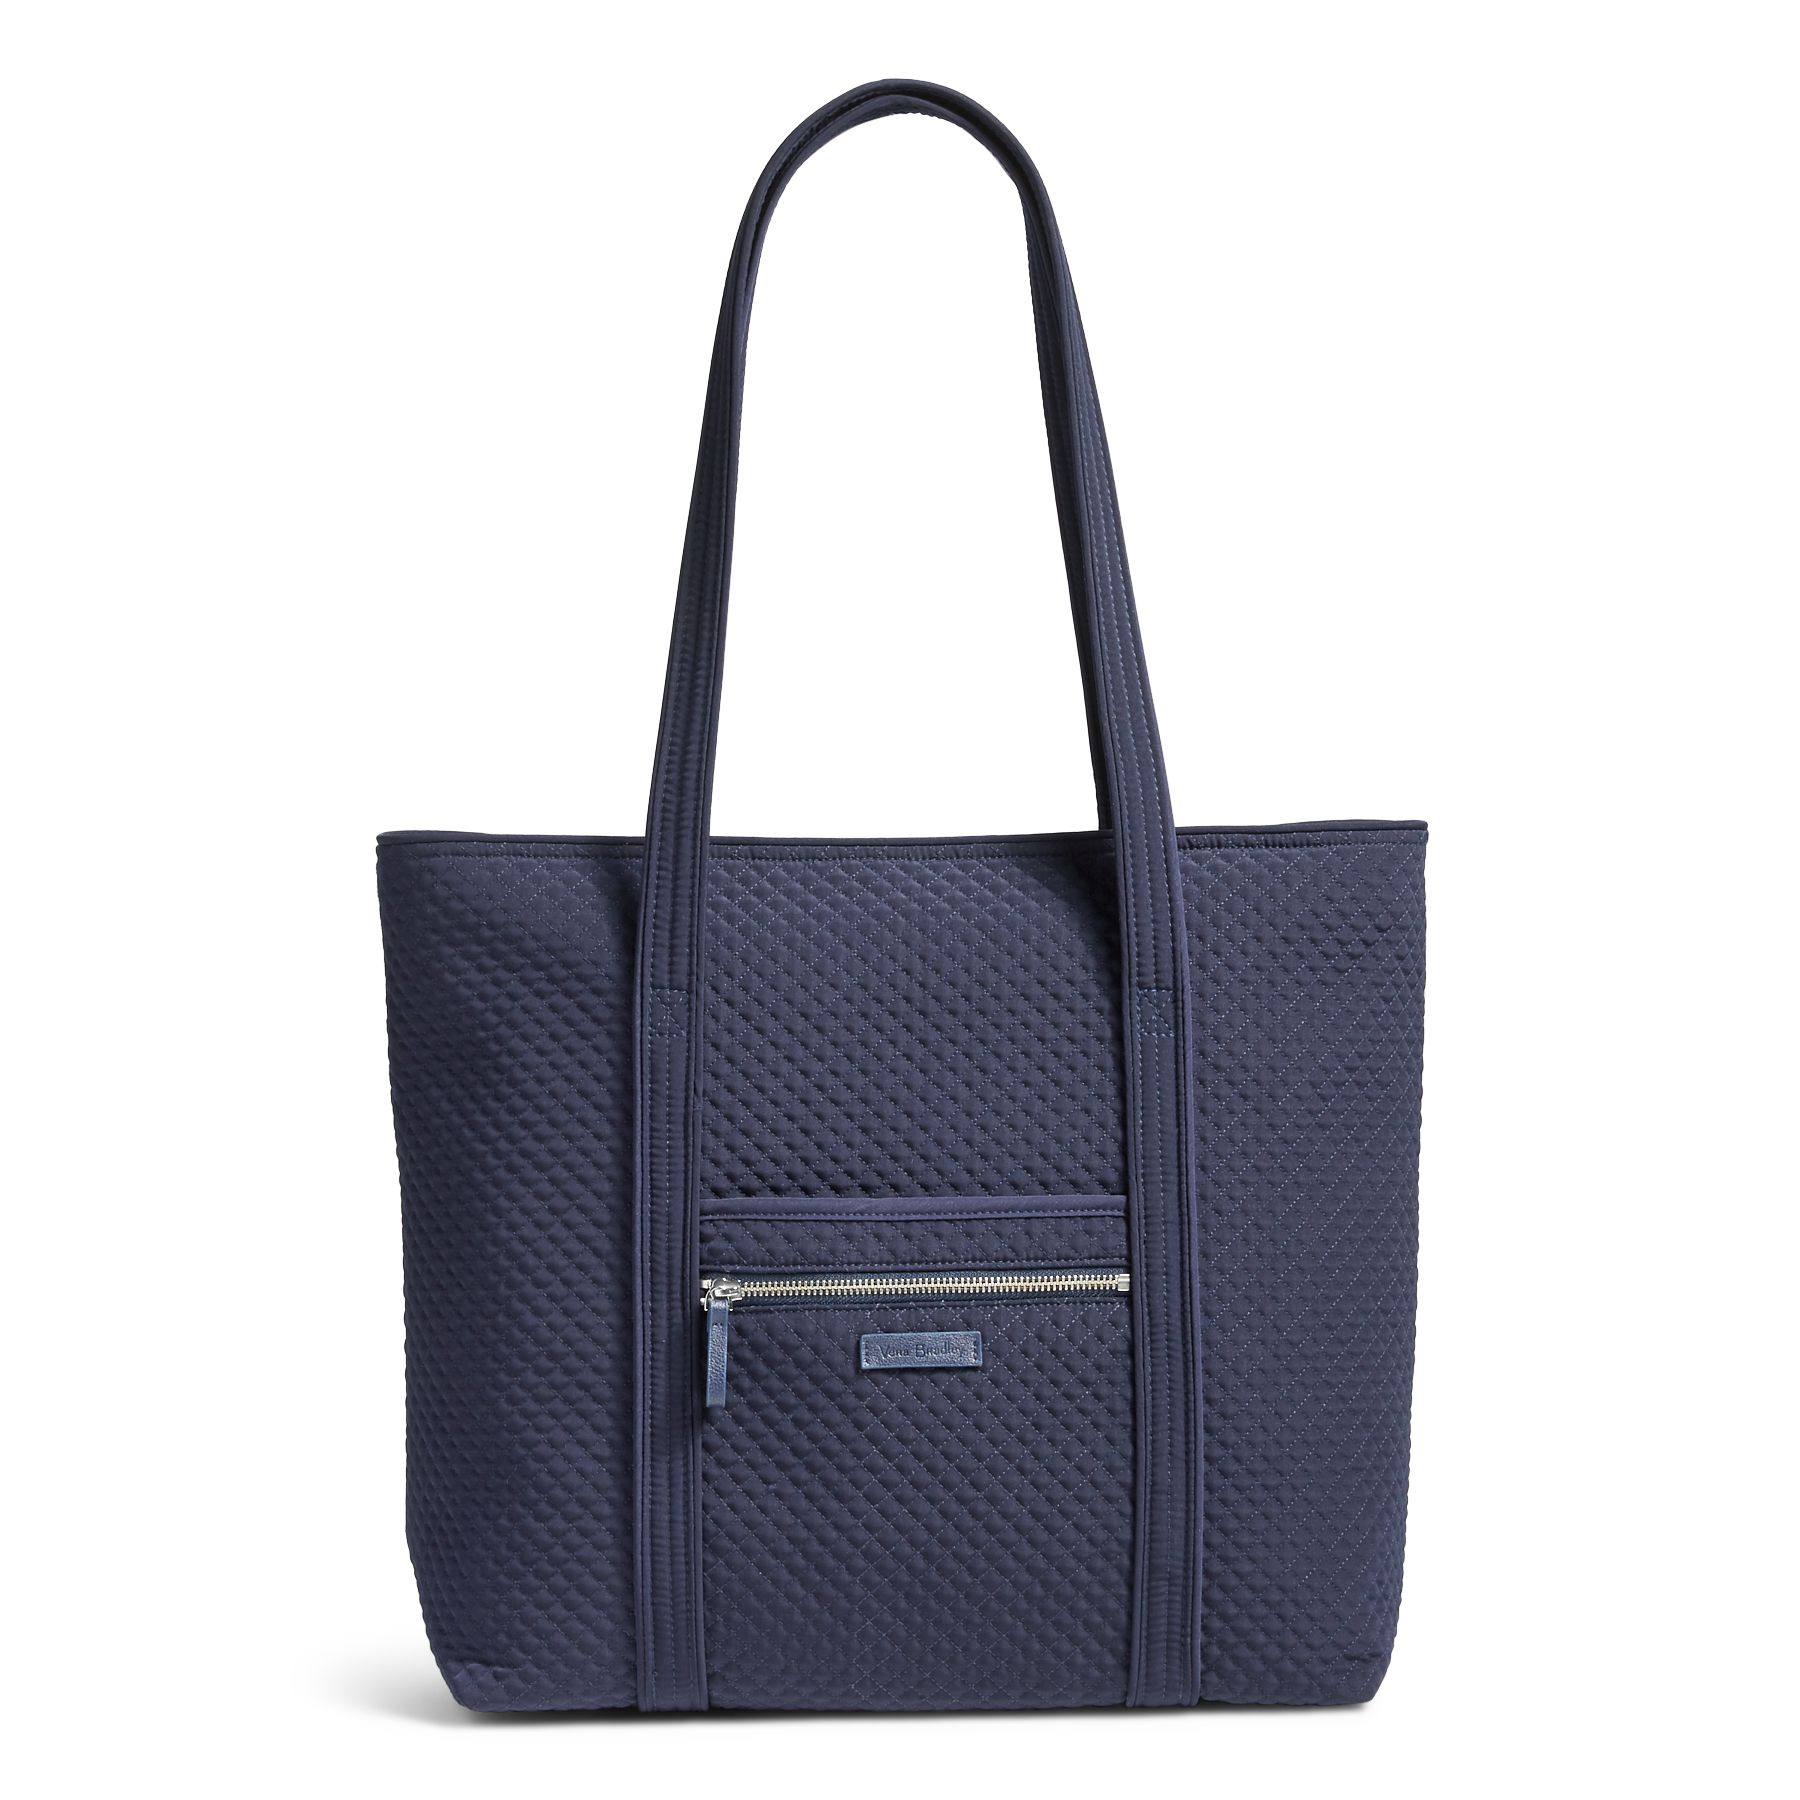 c1a3ad4c05 Microfiber Tote Bags for Women - Bags